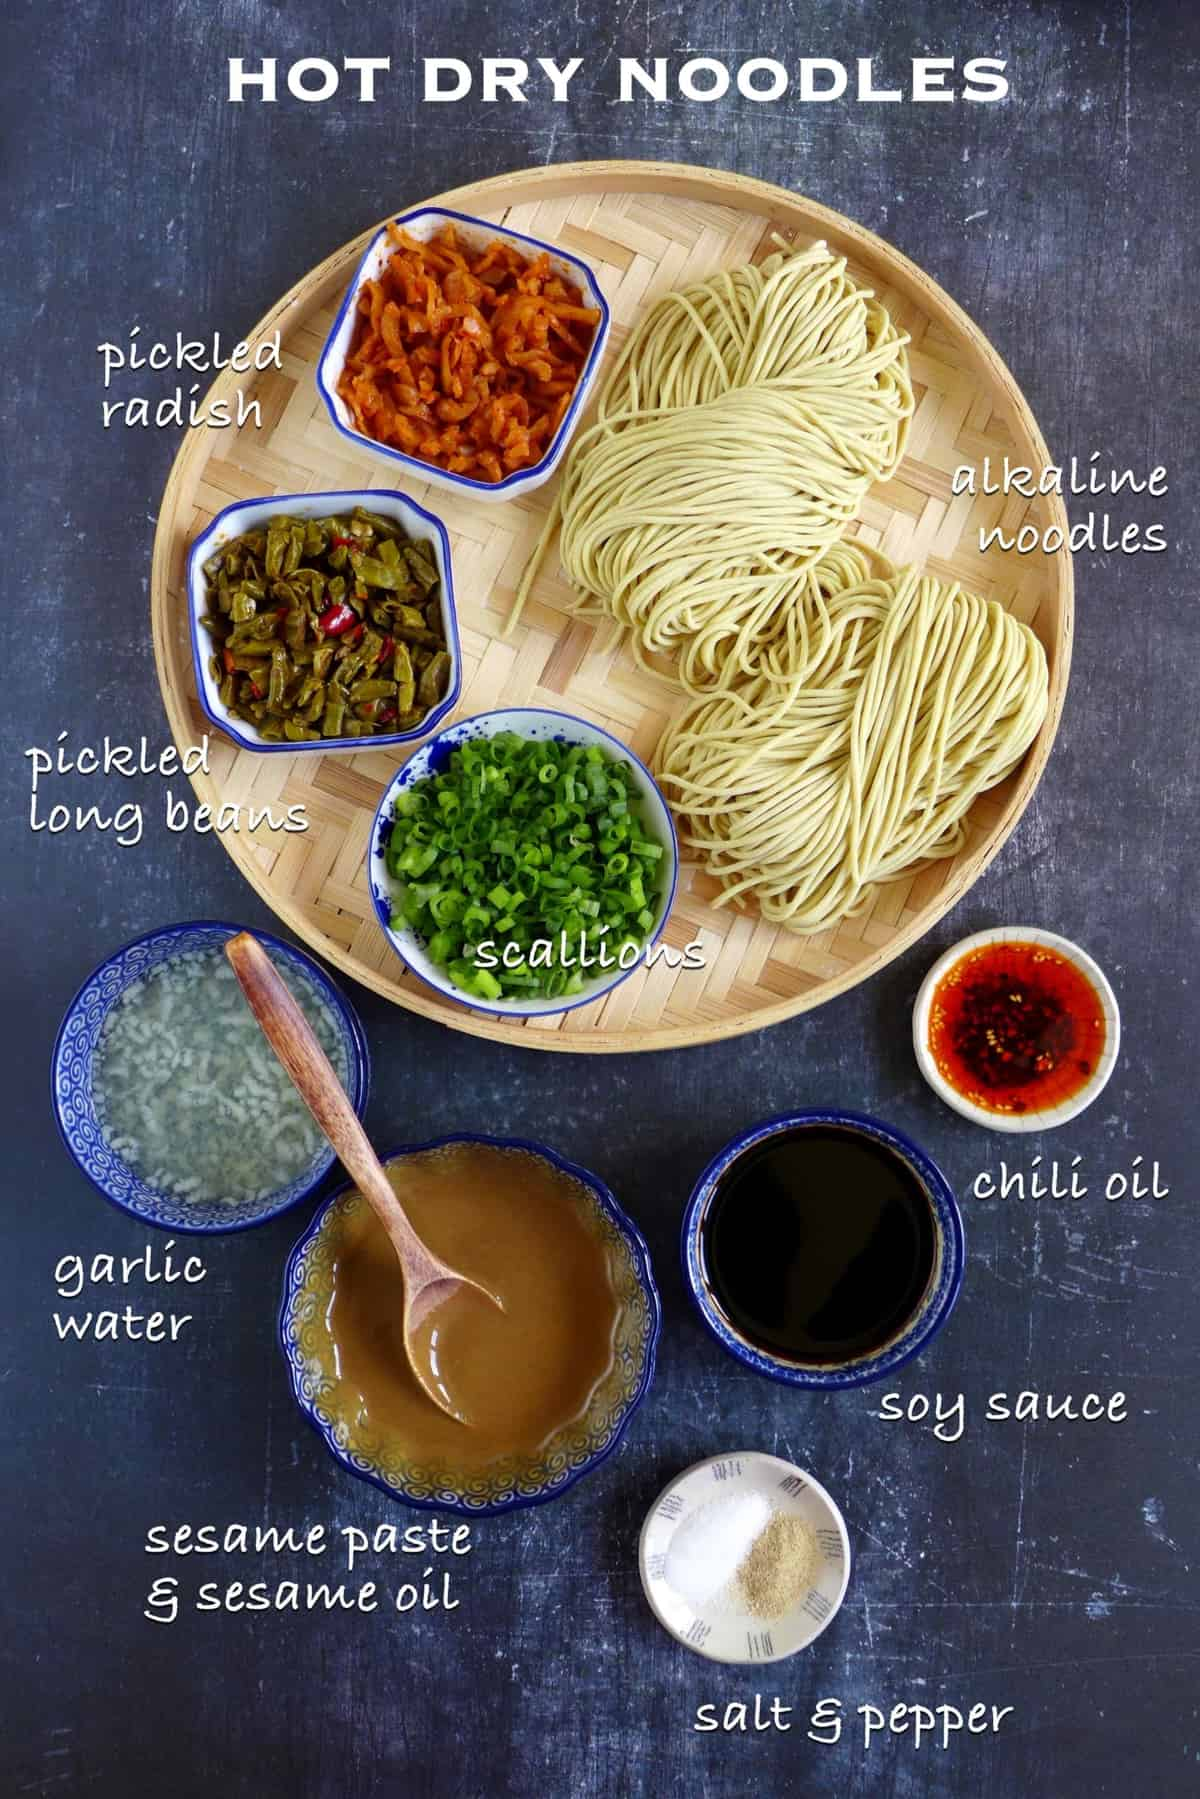 Ingredients for making Wuhan hot dry noodles.